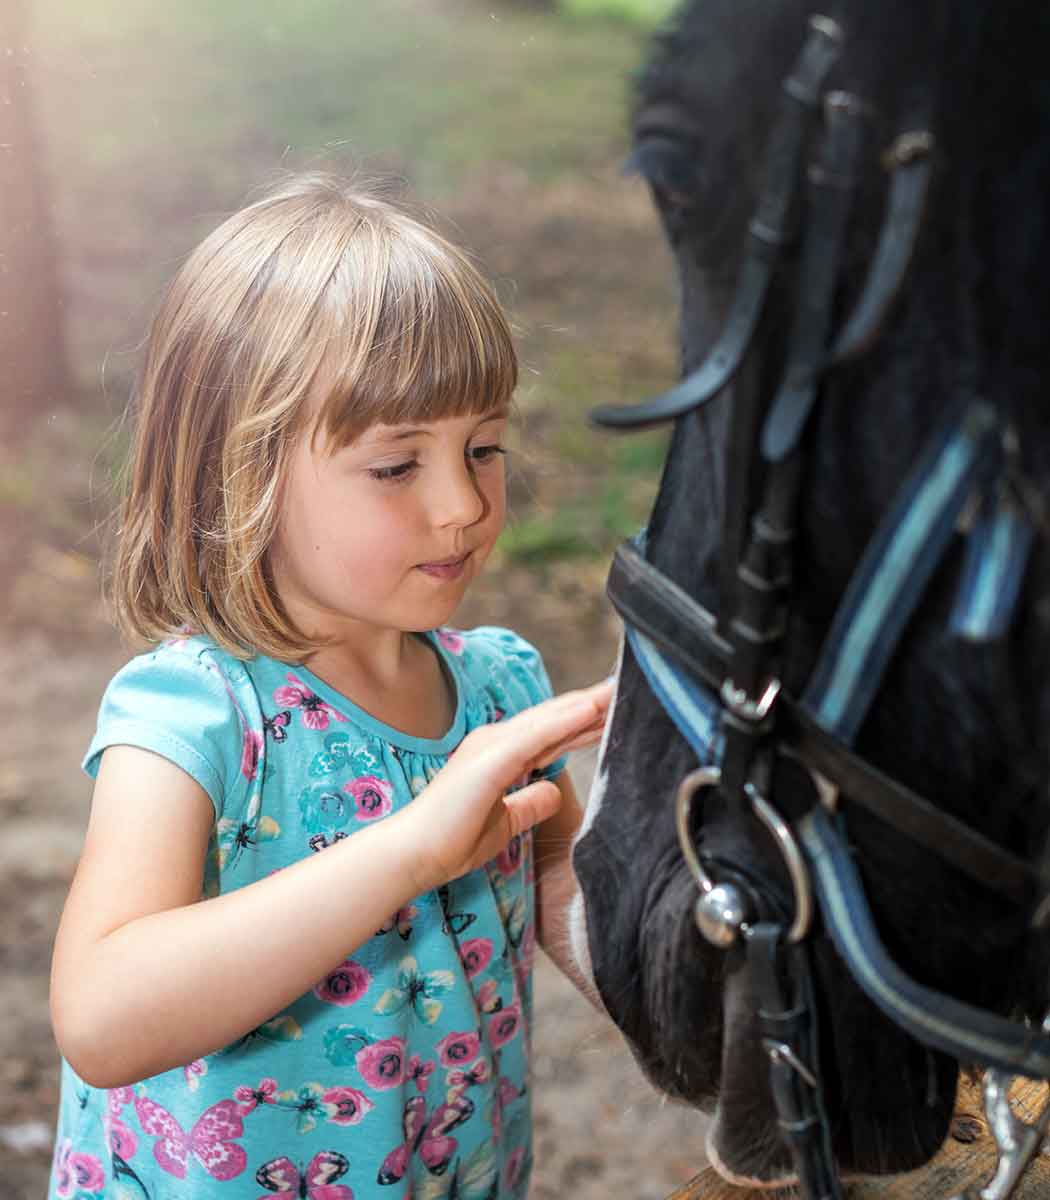 Little girl petting a pony